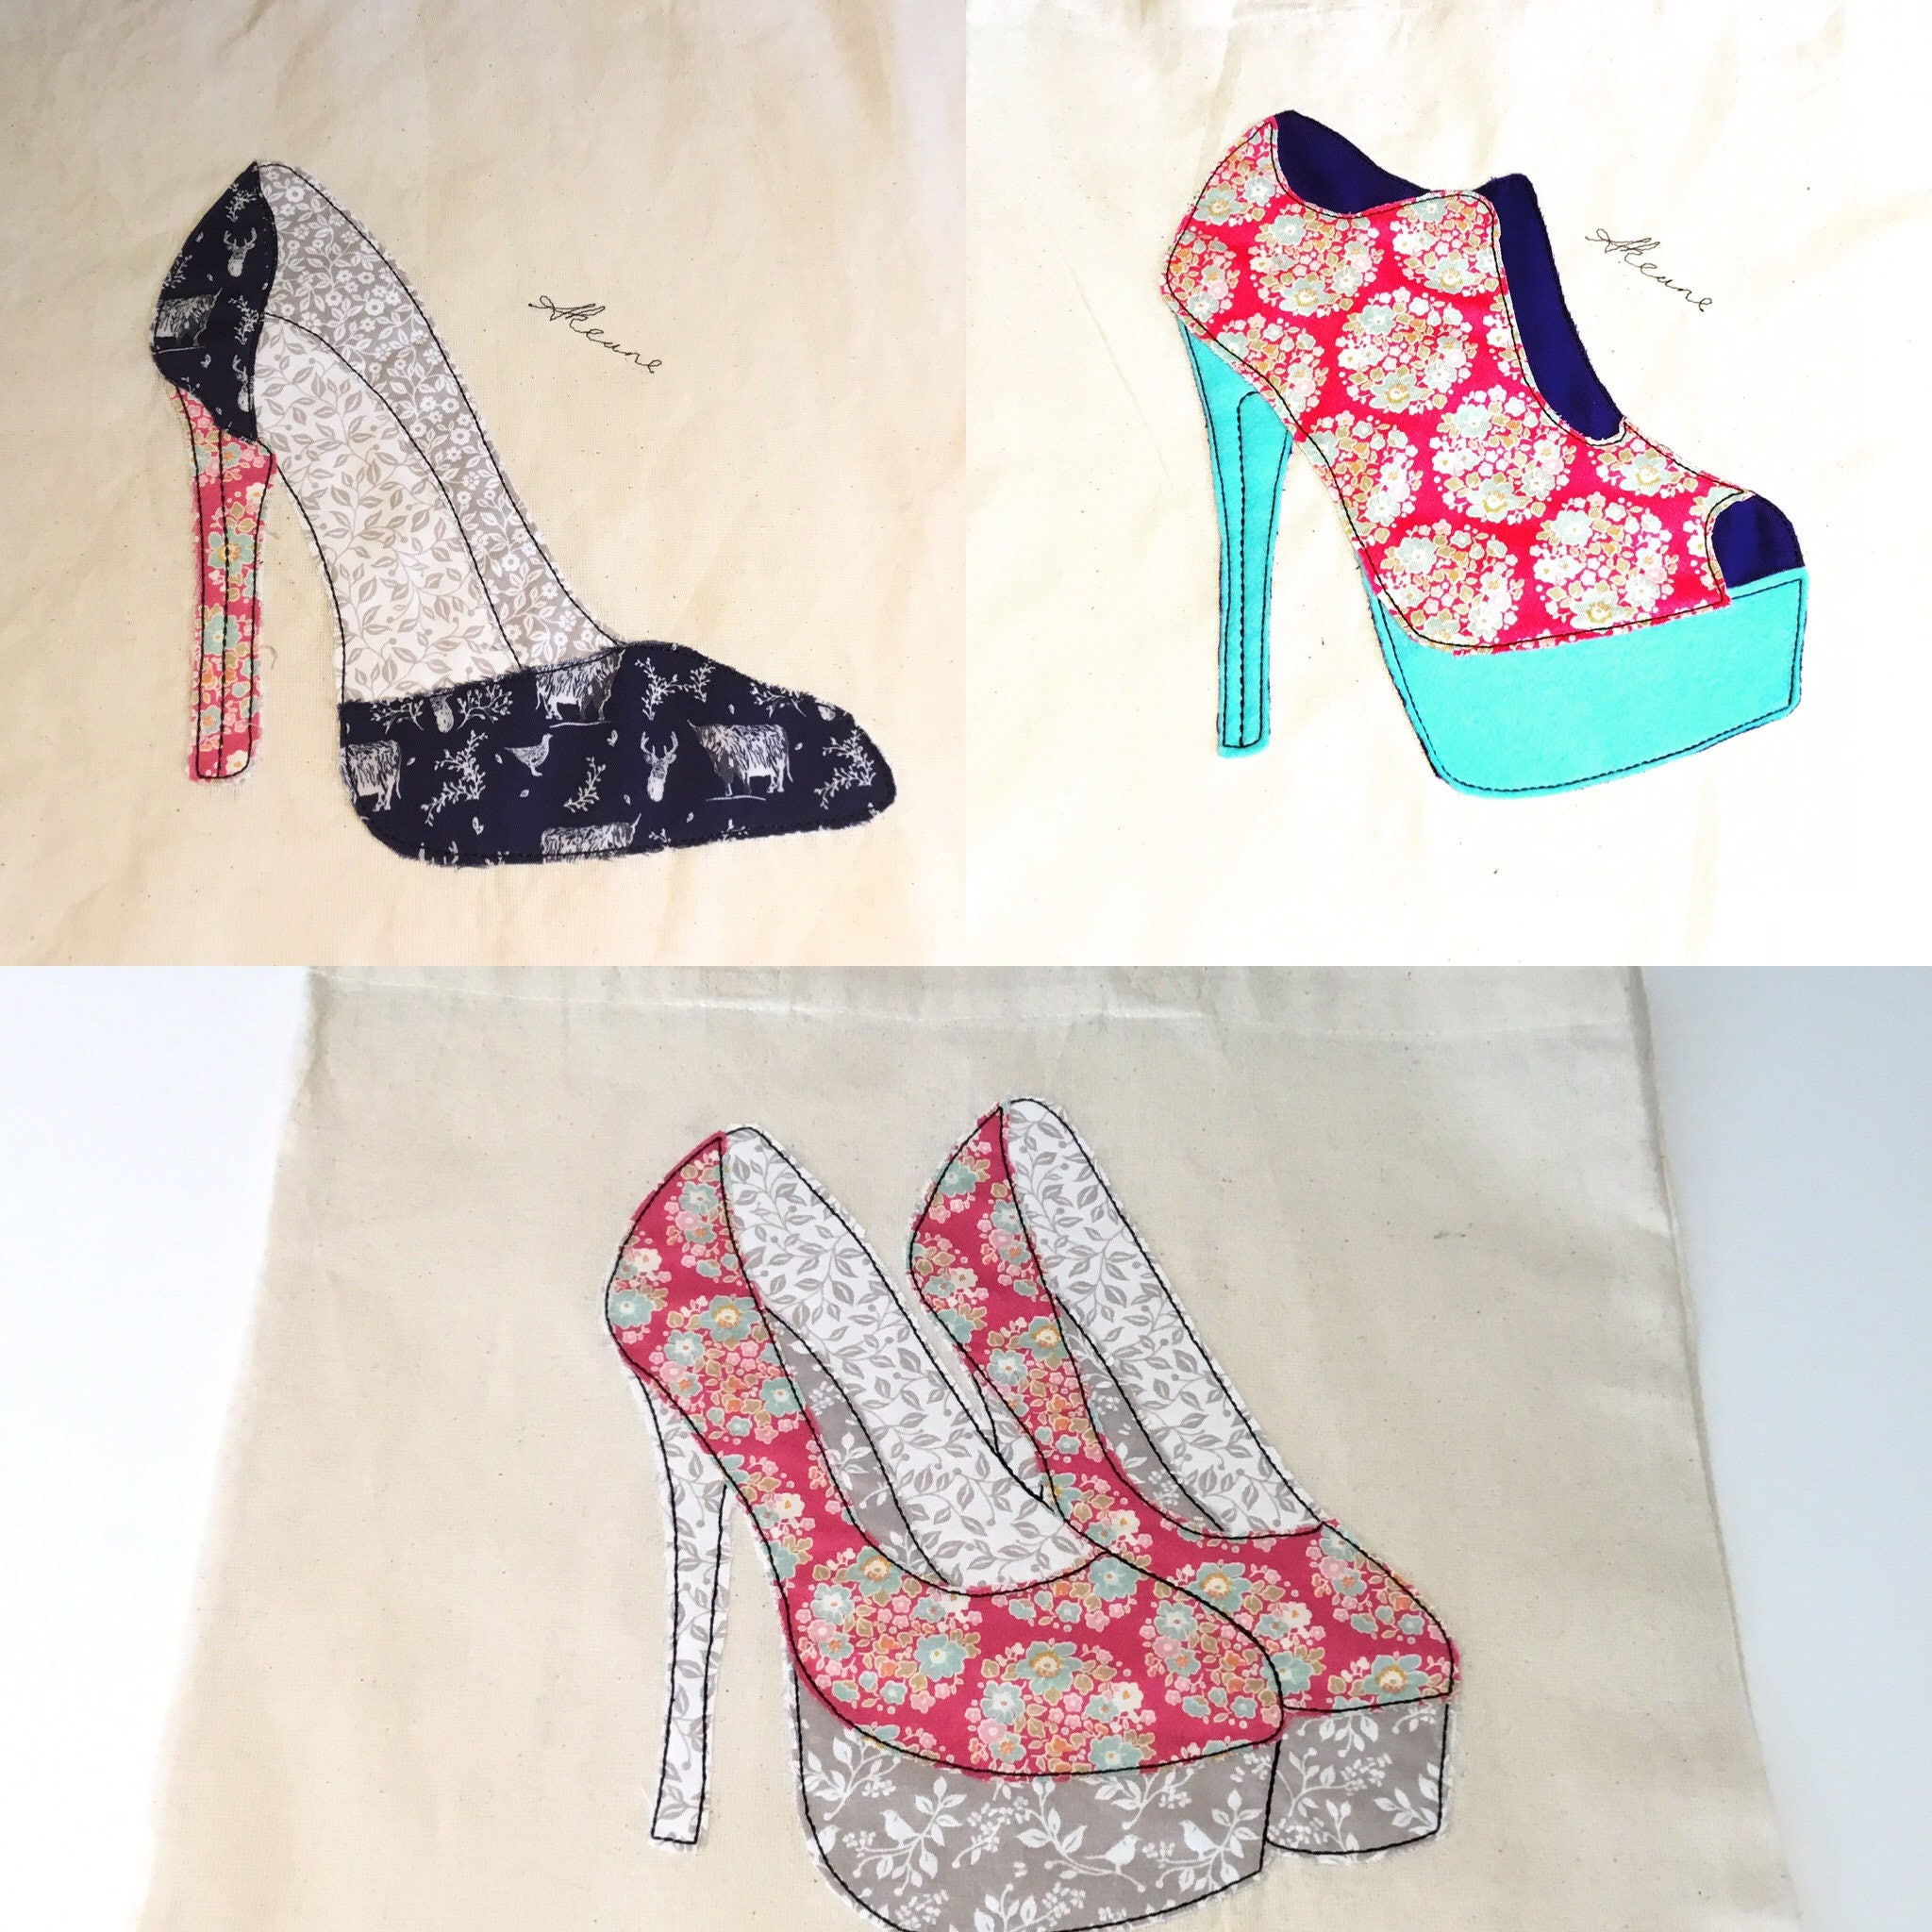 3 Shoe Patterns Machine Embroidery designs that look like